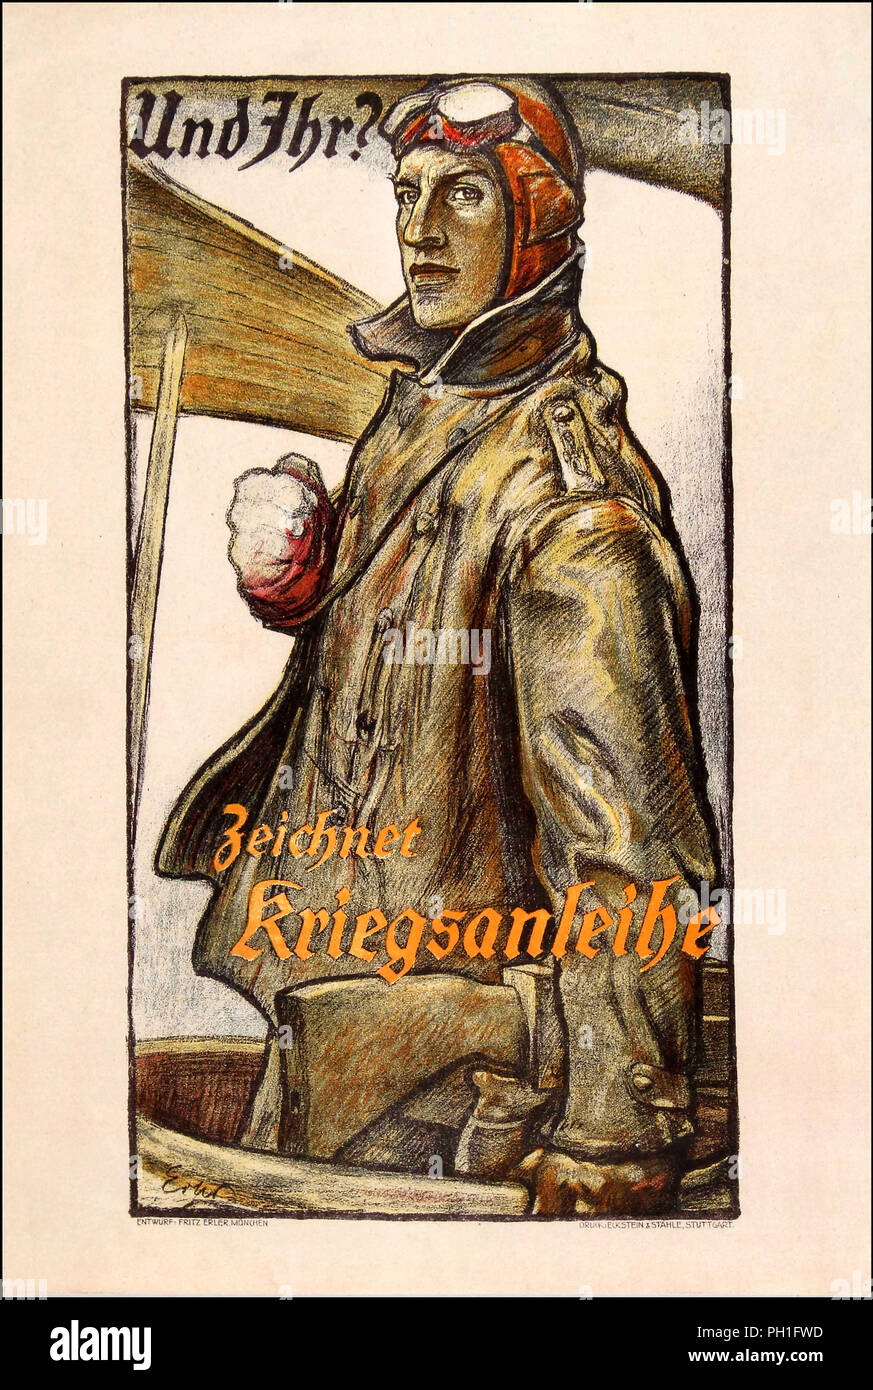 WW1 Original vintage World War One German propaganda recruitment poster: And you? Subscribe to War Loan / Und Ihr? Zeichnet Kriegsanleihe. Artwork by painter graphic designer Fritz Erler (1868-1940) featuring a German military pilot with the text above and below in stylised lettering. Printed in Germany by Eckstein & Stahle, Stuttgart.. Country: Germany, 1918, design by Fritz Erler - Stock Image